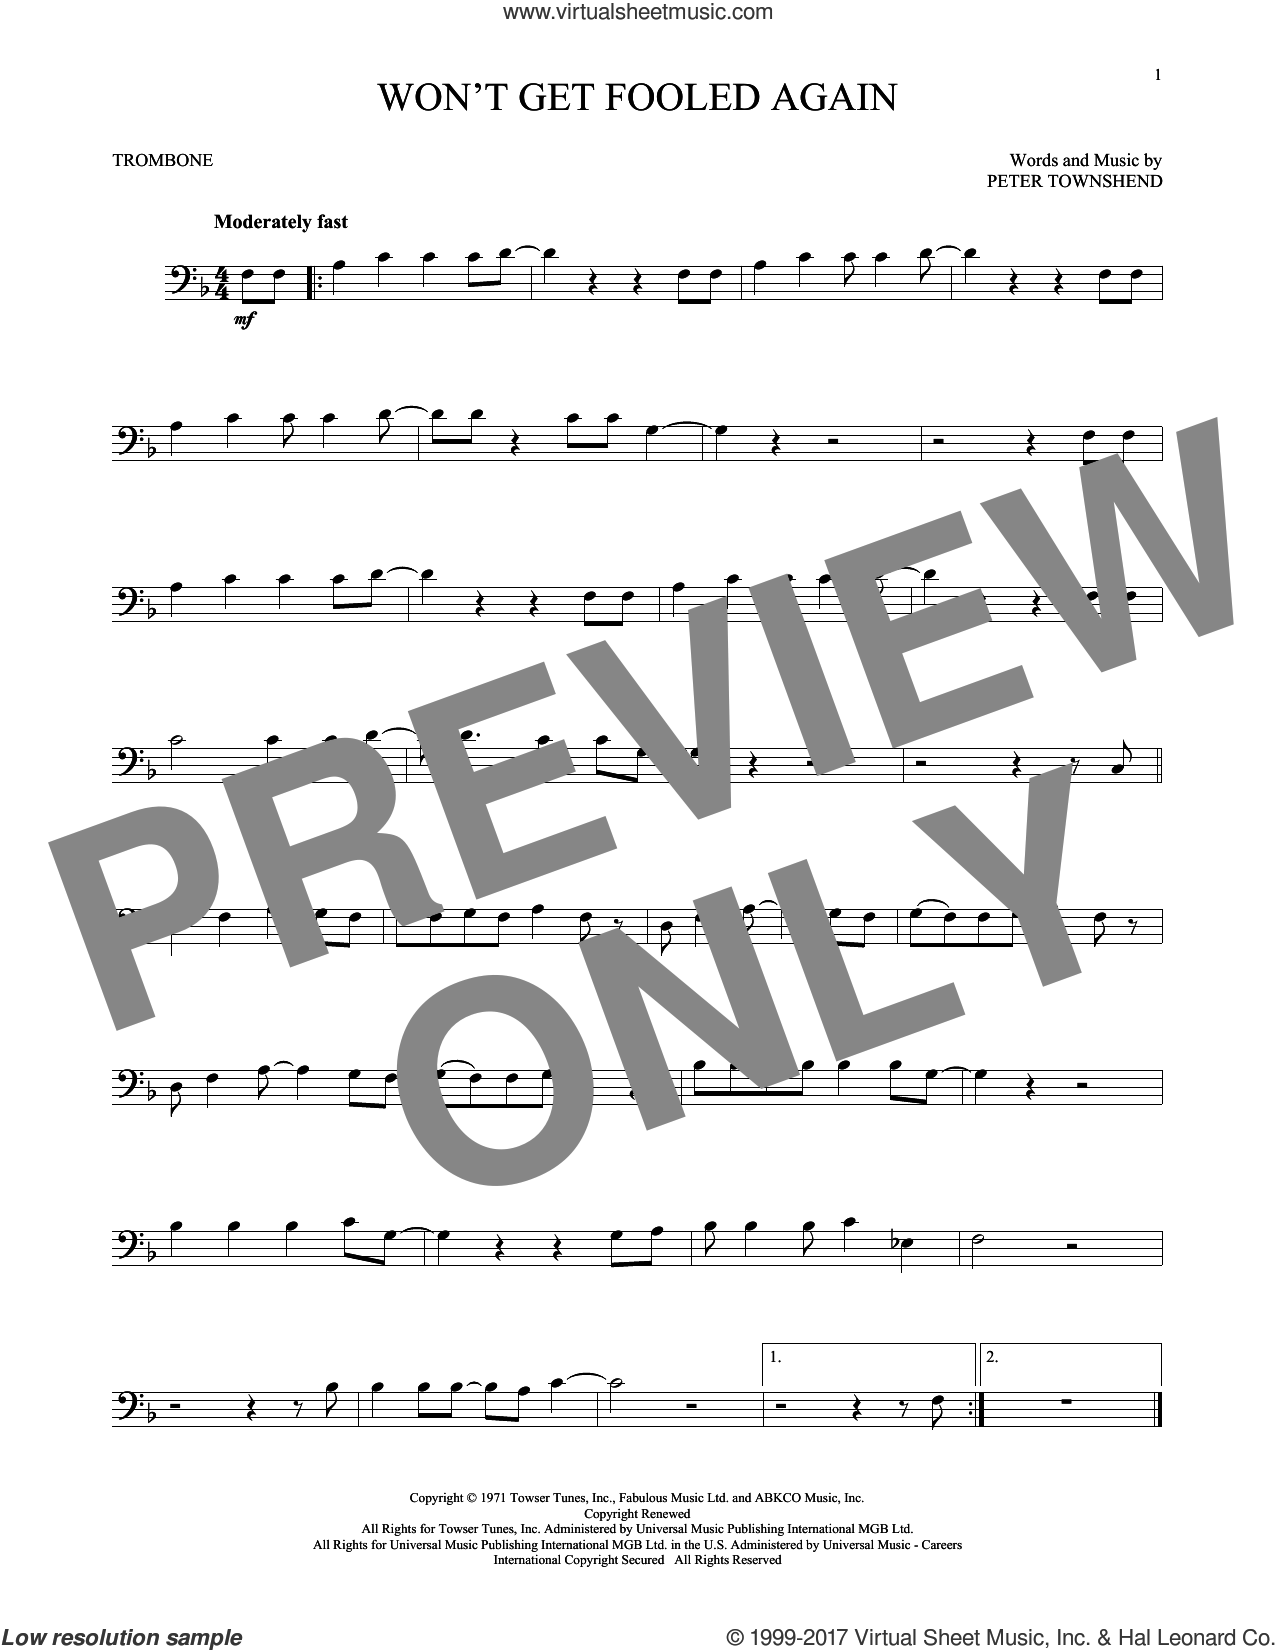 Won't Get Fooled Again sheet music for trombone solo by The Who and Pete Townshend, intermediate skill level